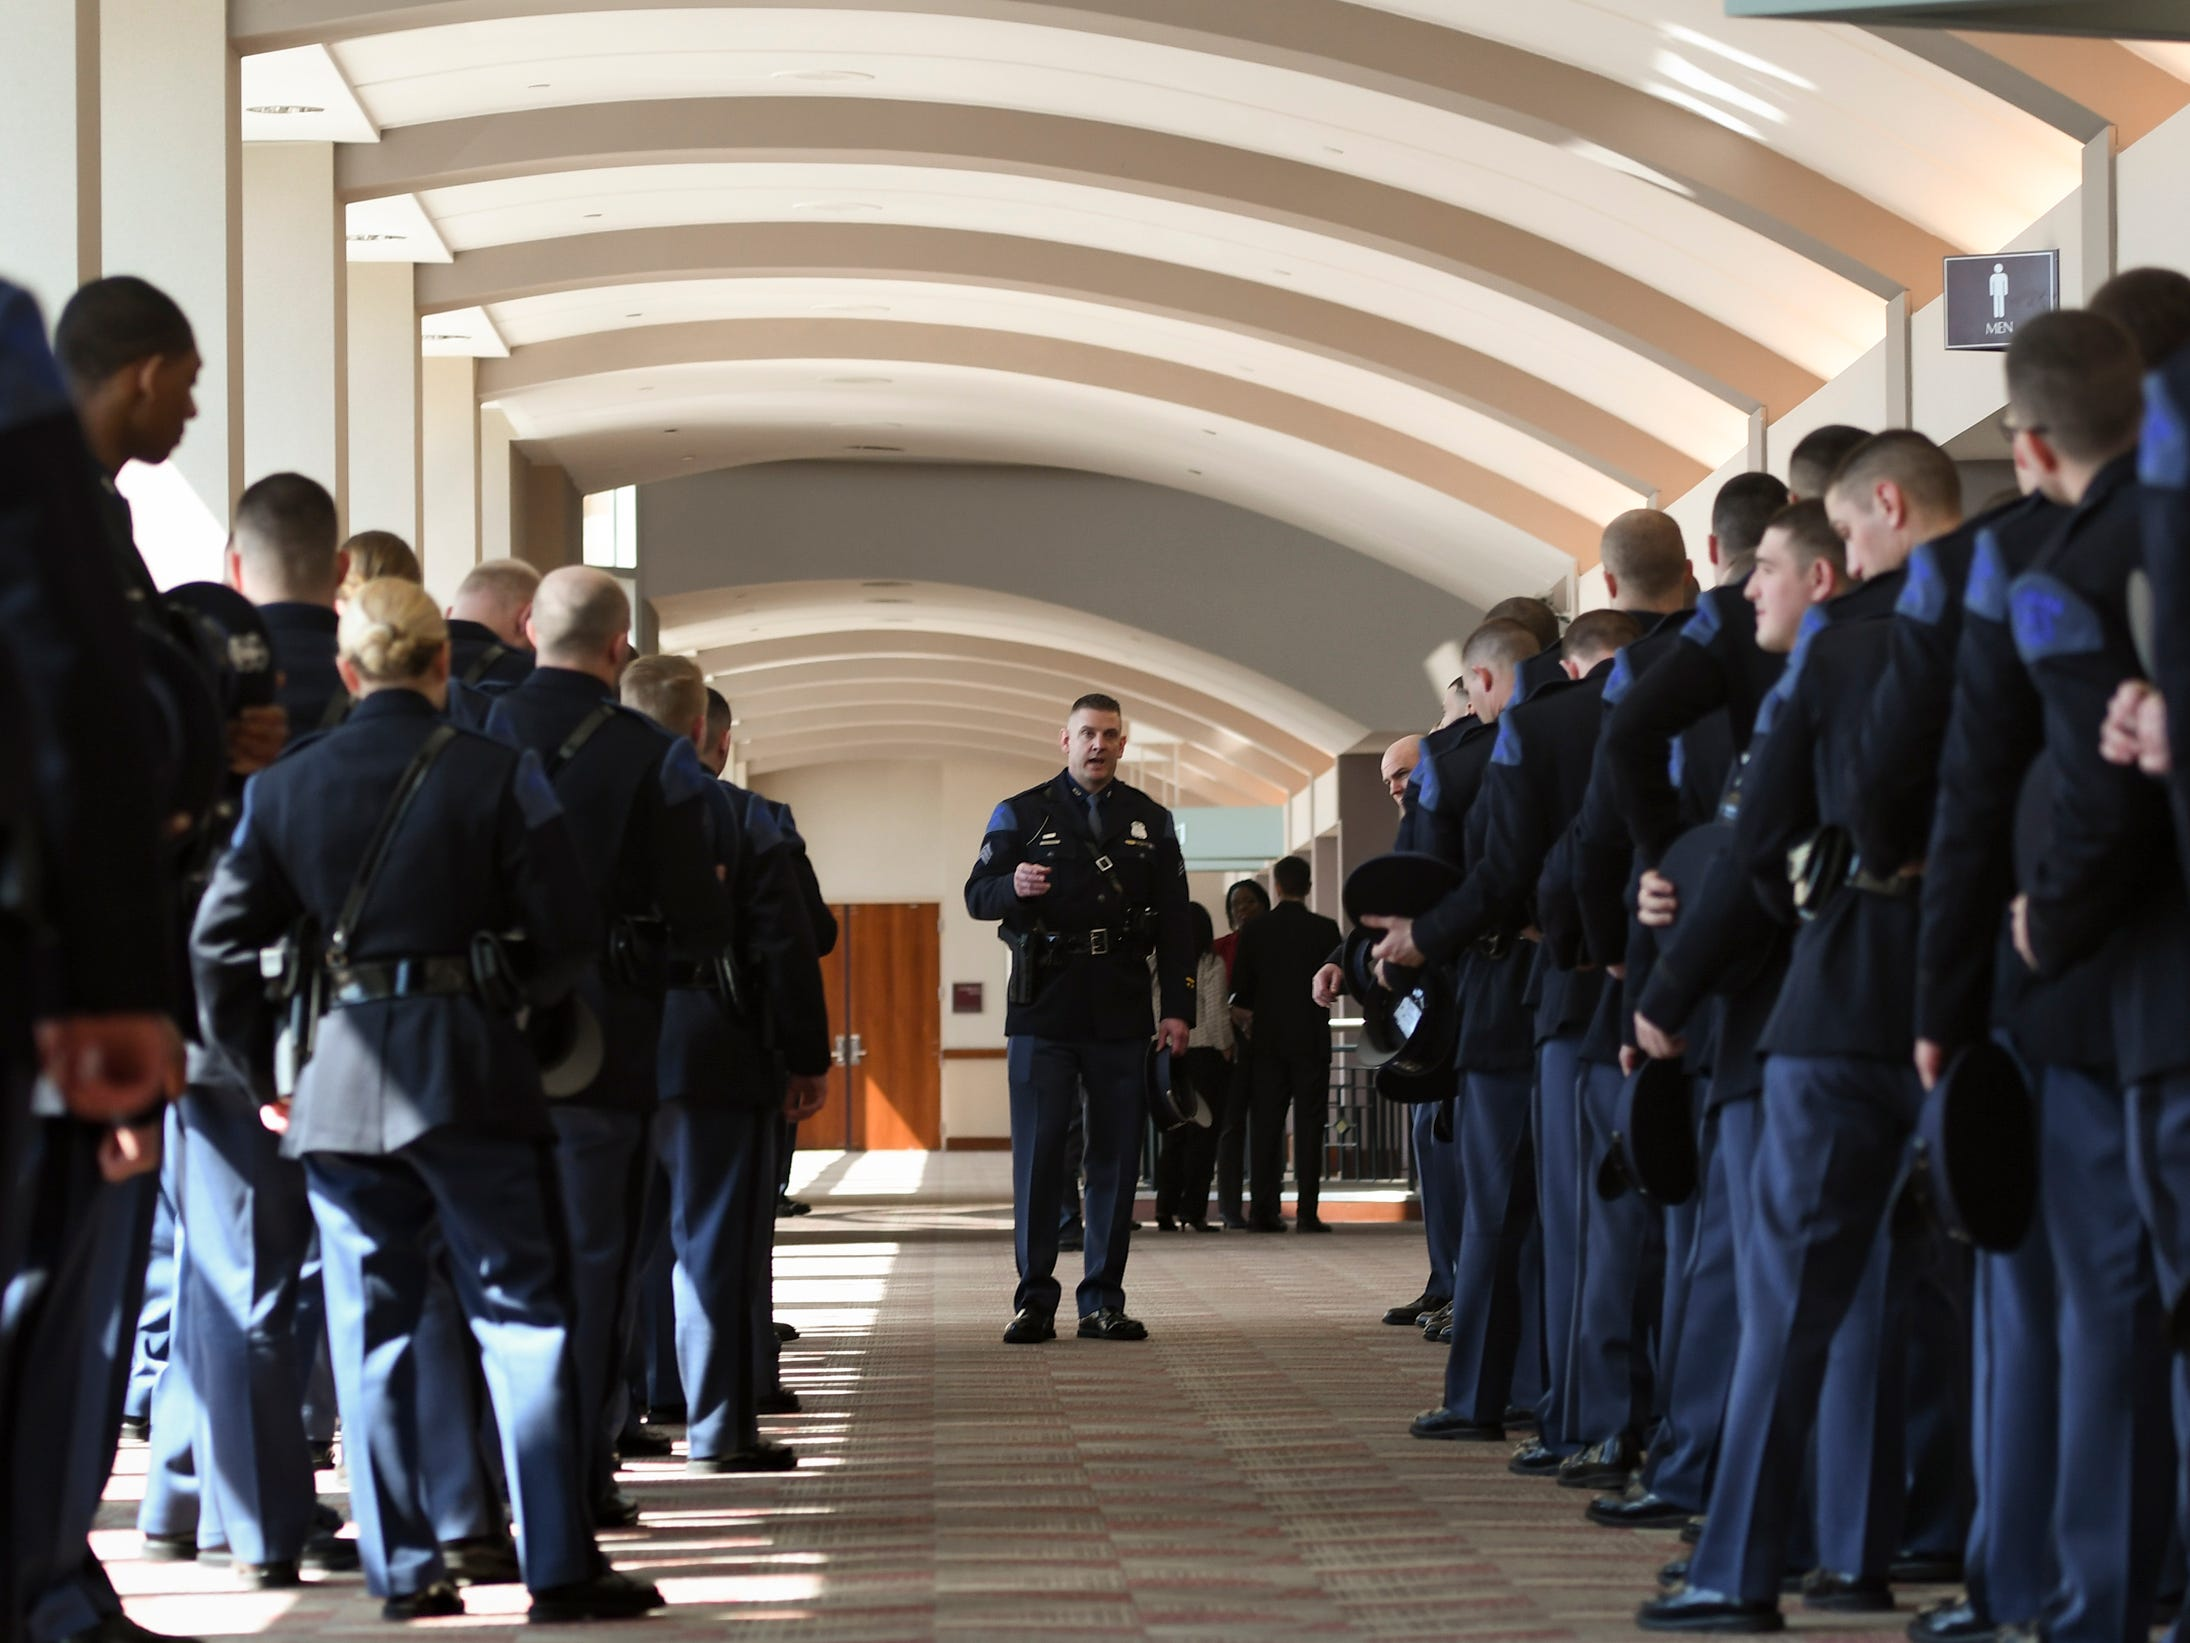 Michigan State Police Academy Commander Sgt. Cimmeron McRae speaks with members of the 135th Michigan State Police Trooper Recruit School prior to their cadence entry into the Lansing Center for graduation ceremonies and swearing in.  101 troopers graduated.